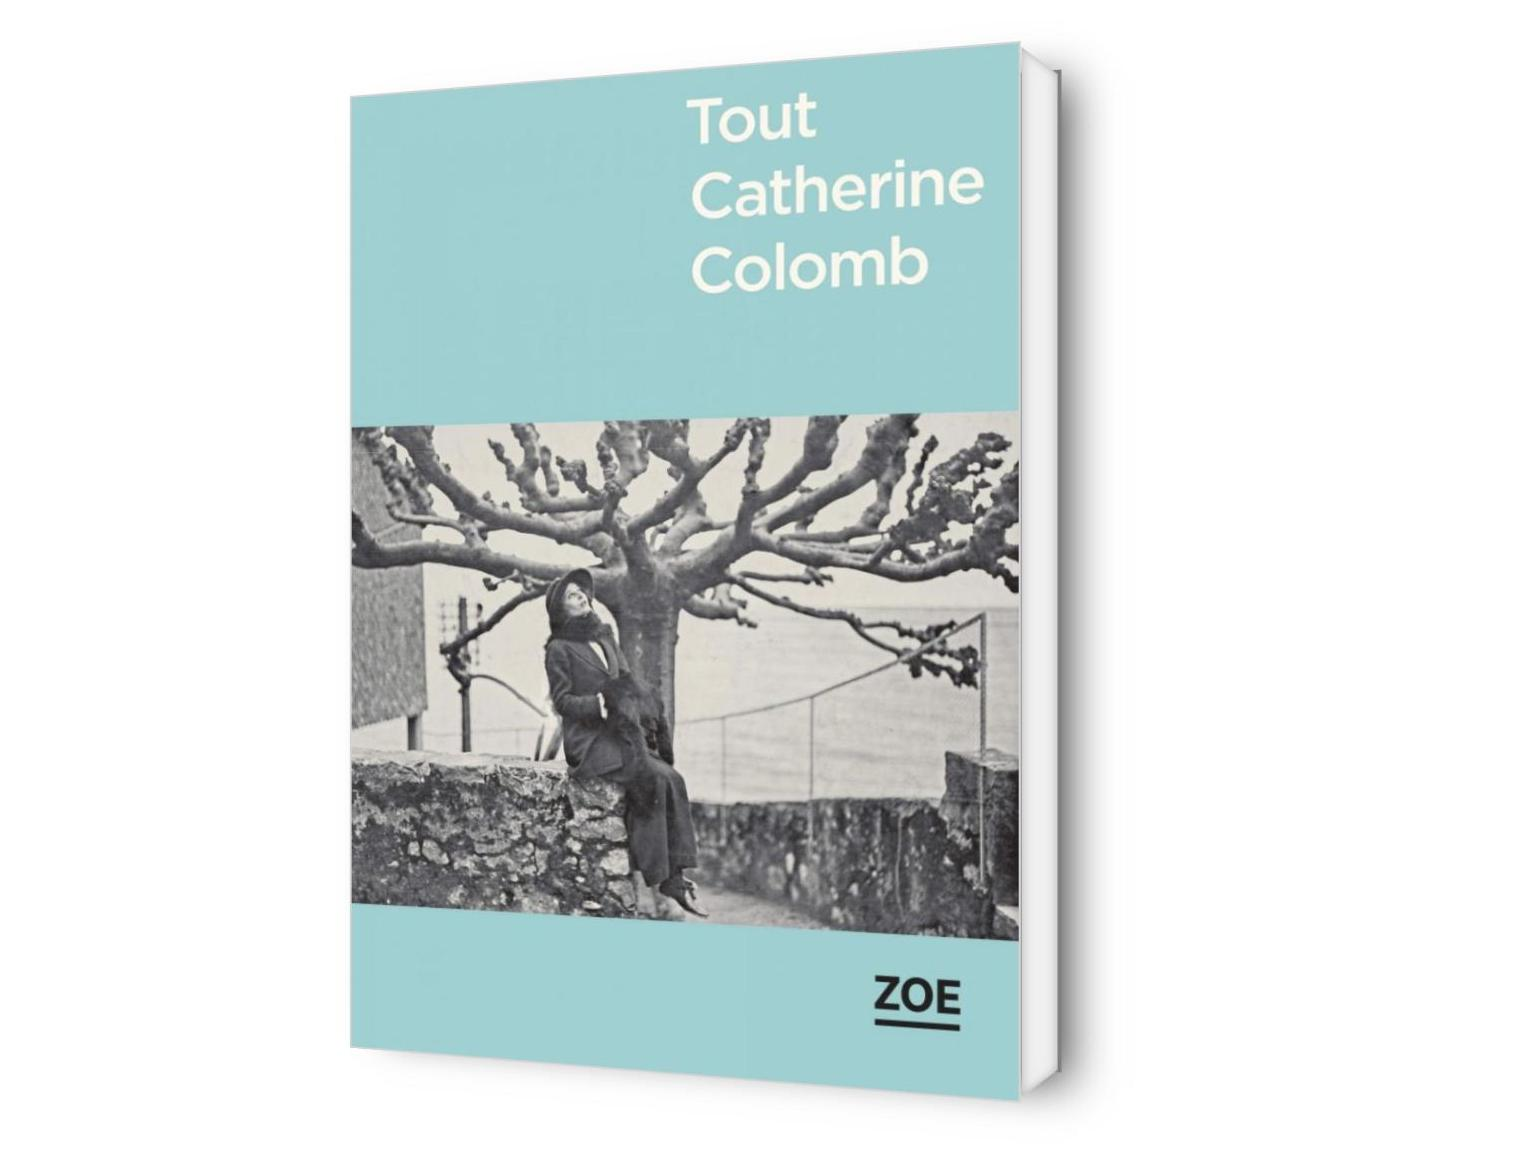 Tout Catherine Colomb